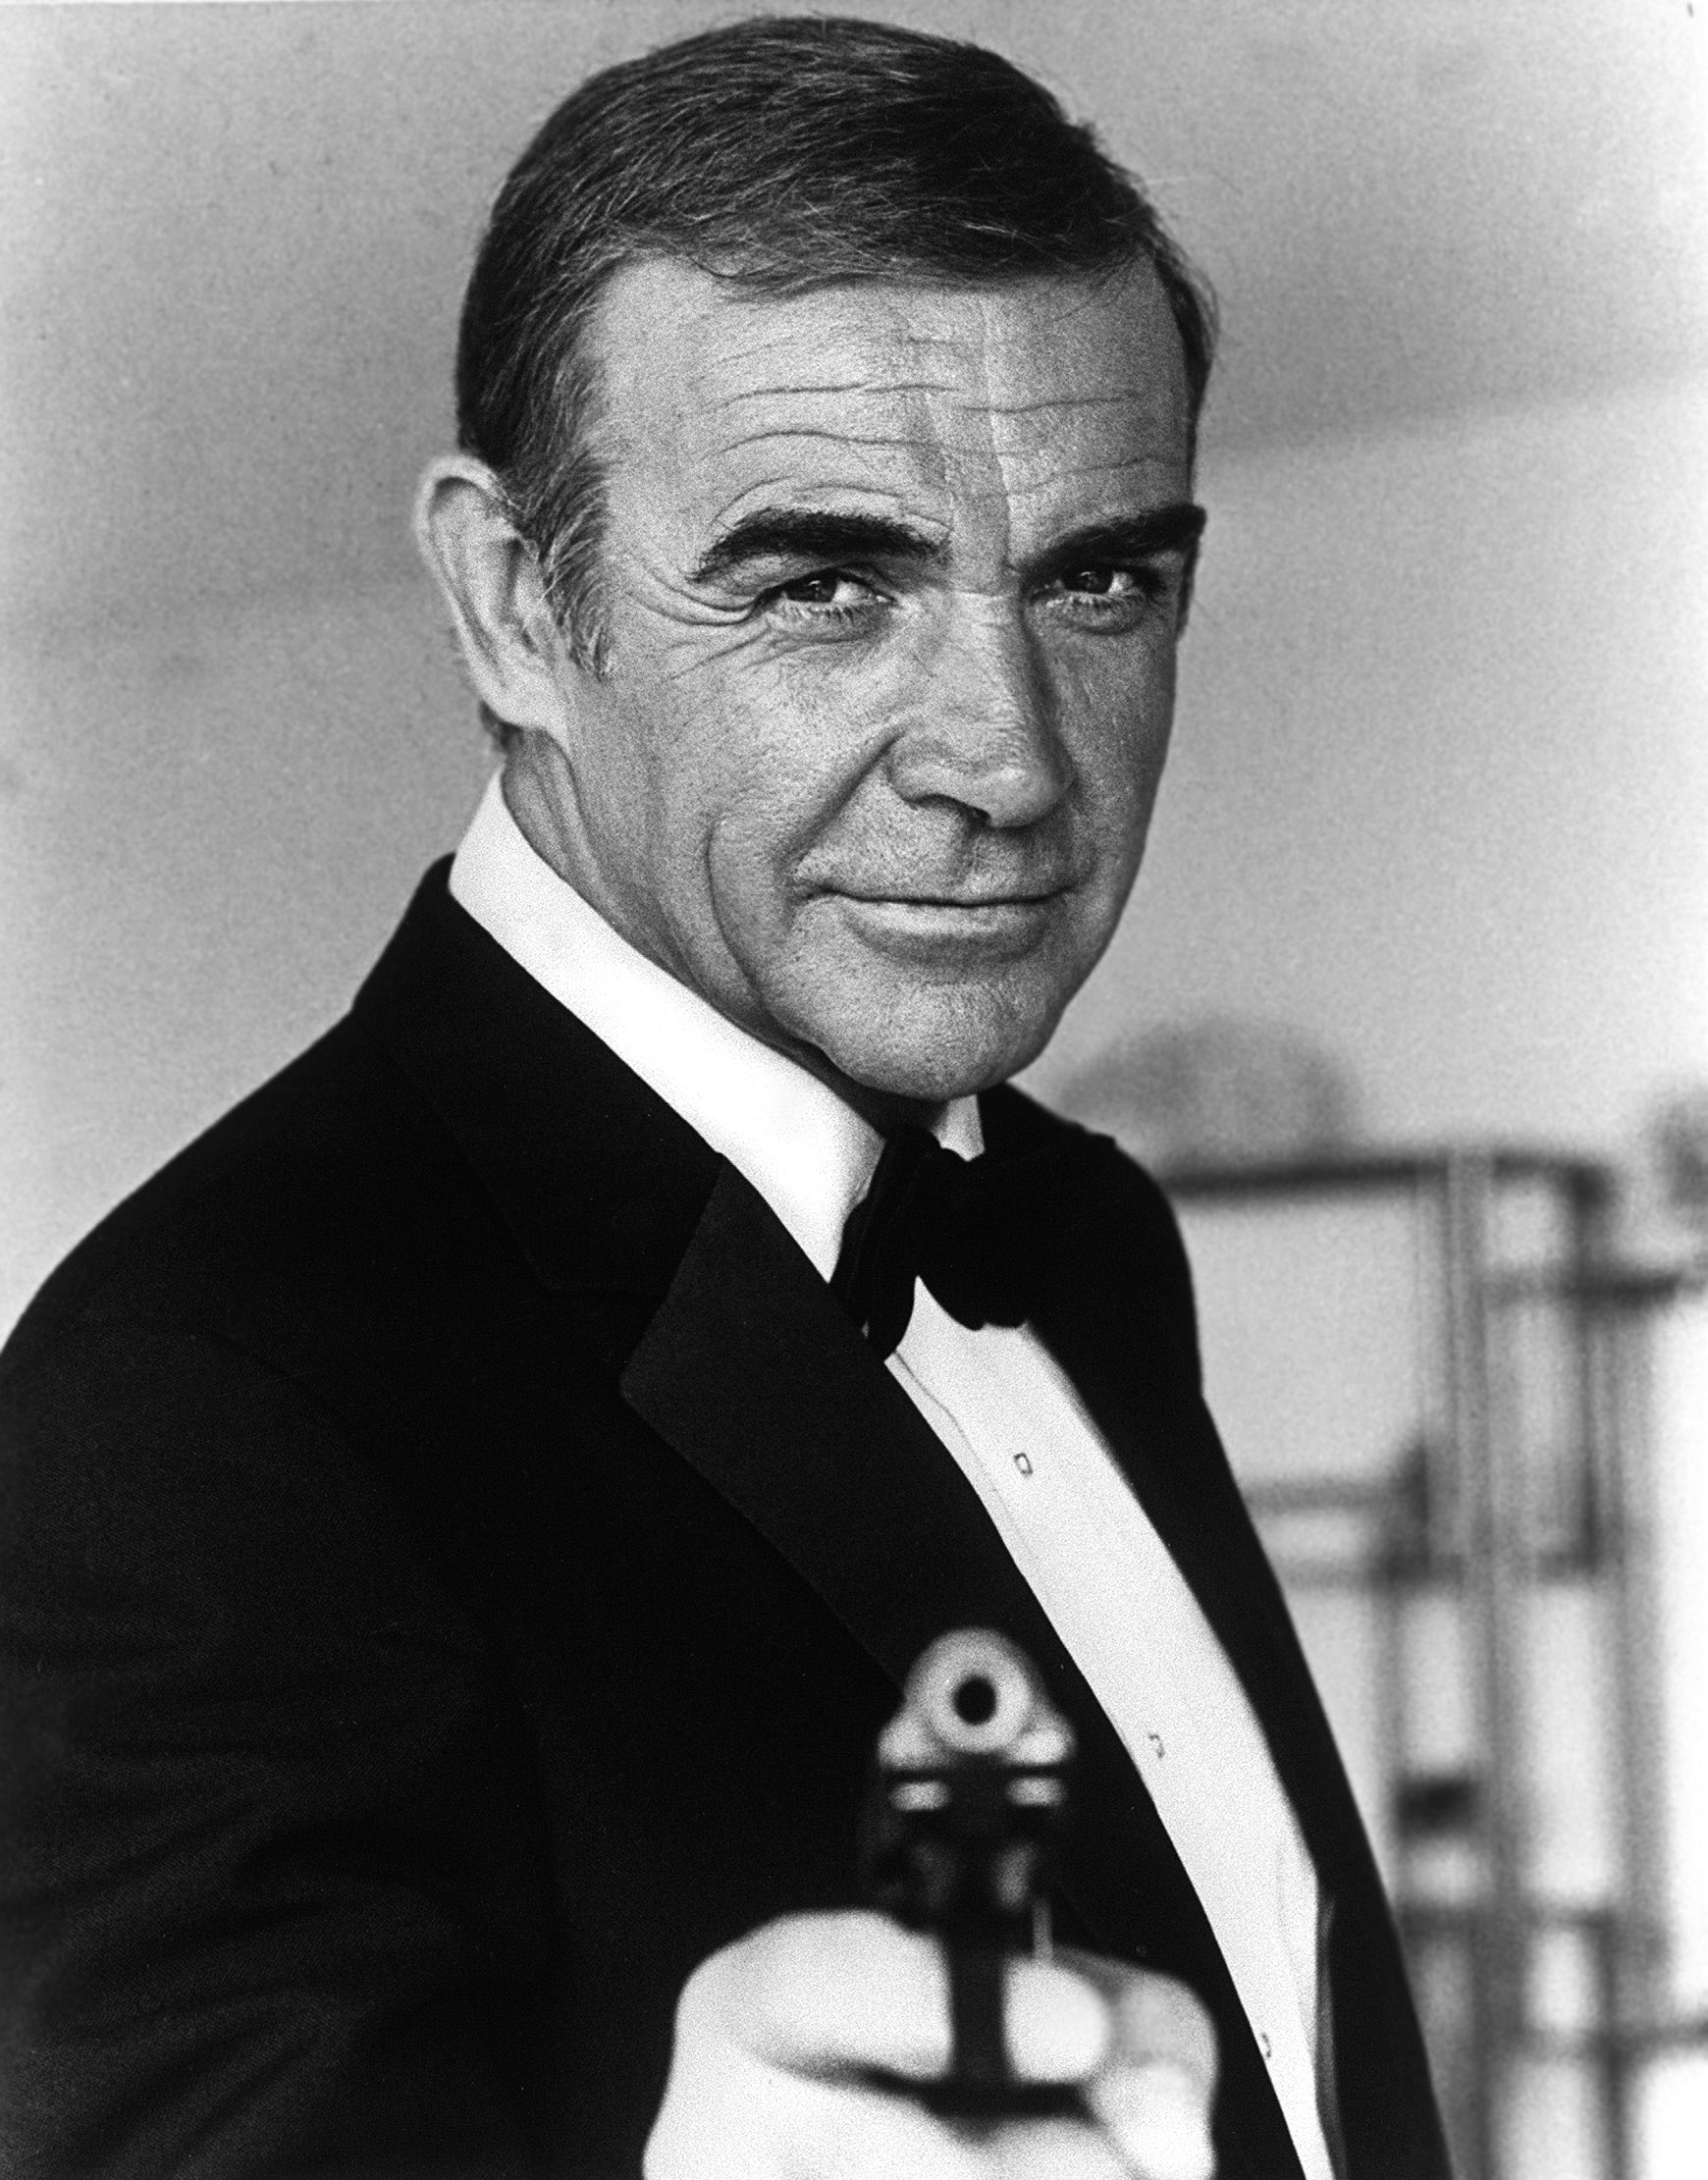 sean connery james bond 50 years of James Bond